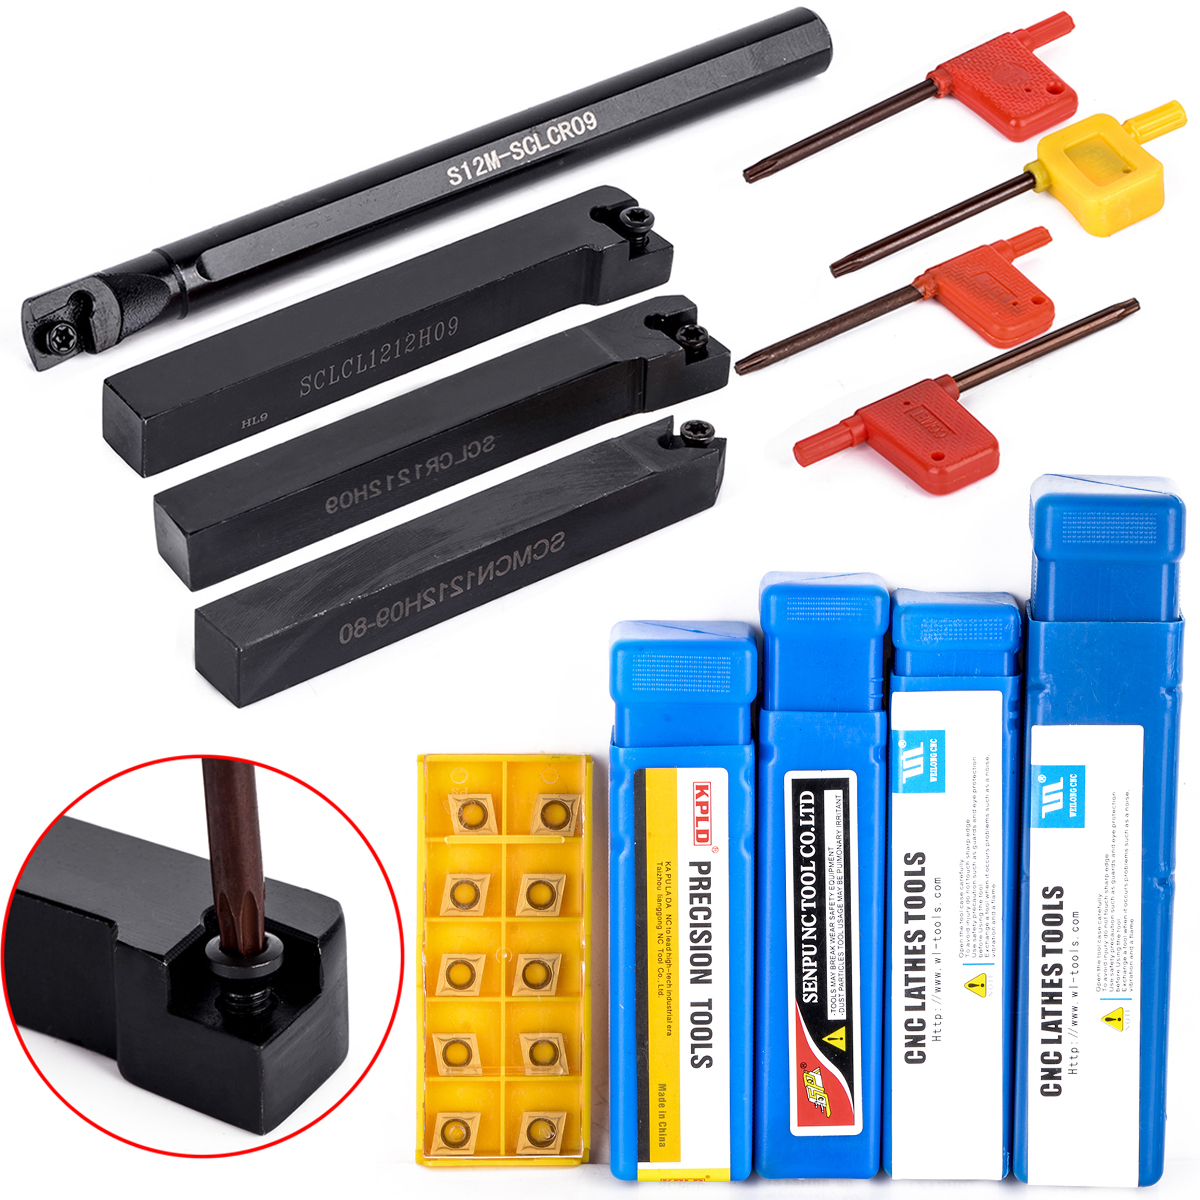 10Pcs CCMT09T304 Carbide Inserts + 4Pcs 12 Mm Shank Lathe Turning Tool Holder With 4Pcs Wrenches For Lathe CNC Turning Tool